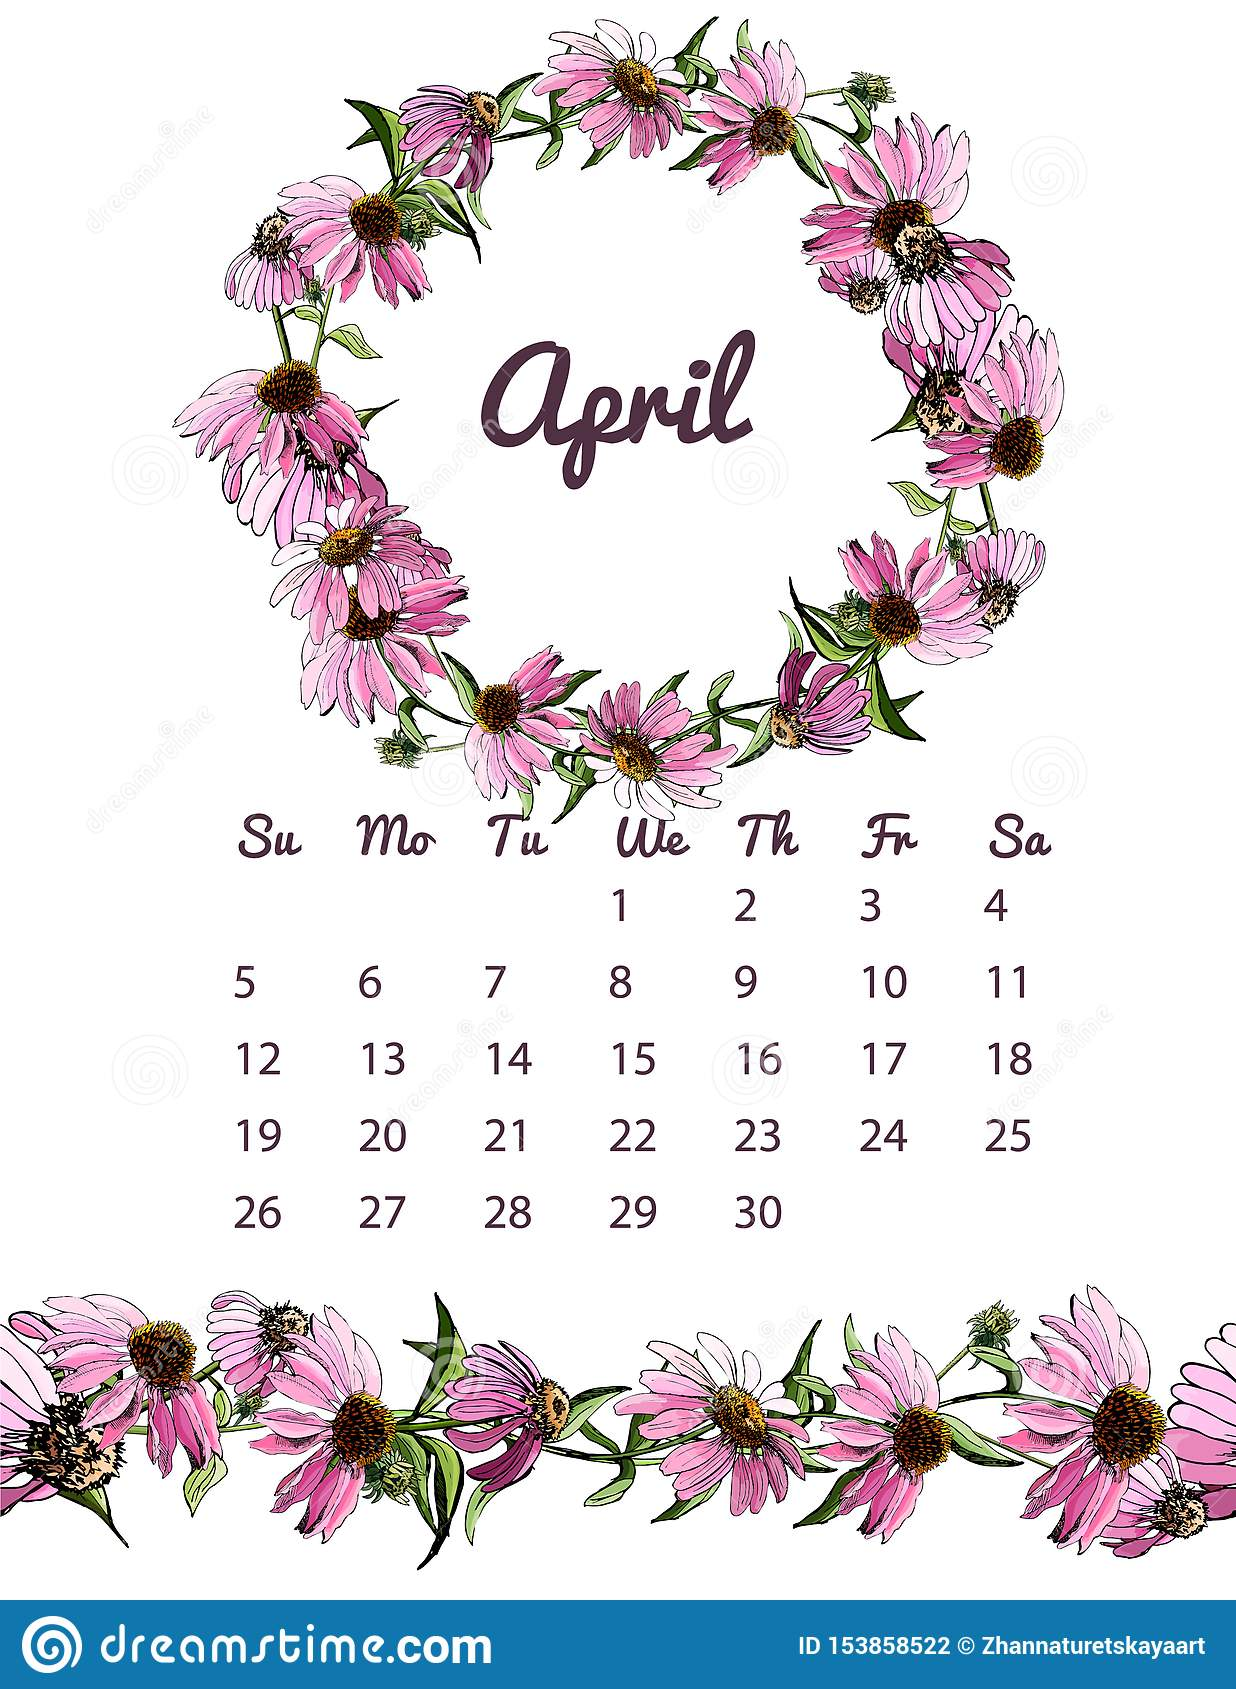 image about Wreath Printable titled Printable Botanical Calendar 2020 With Wreath And Countless